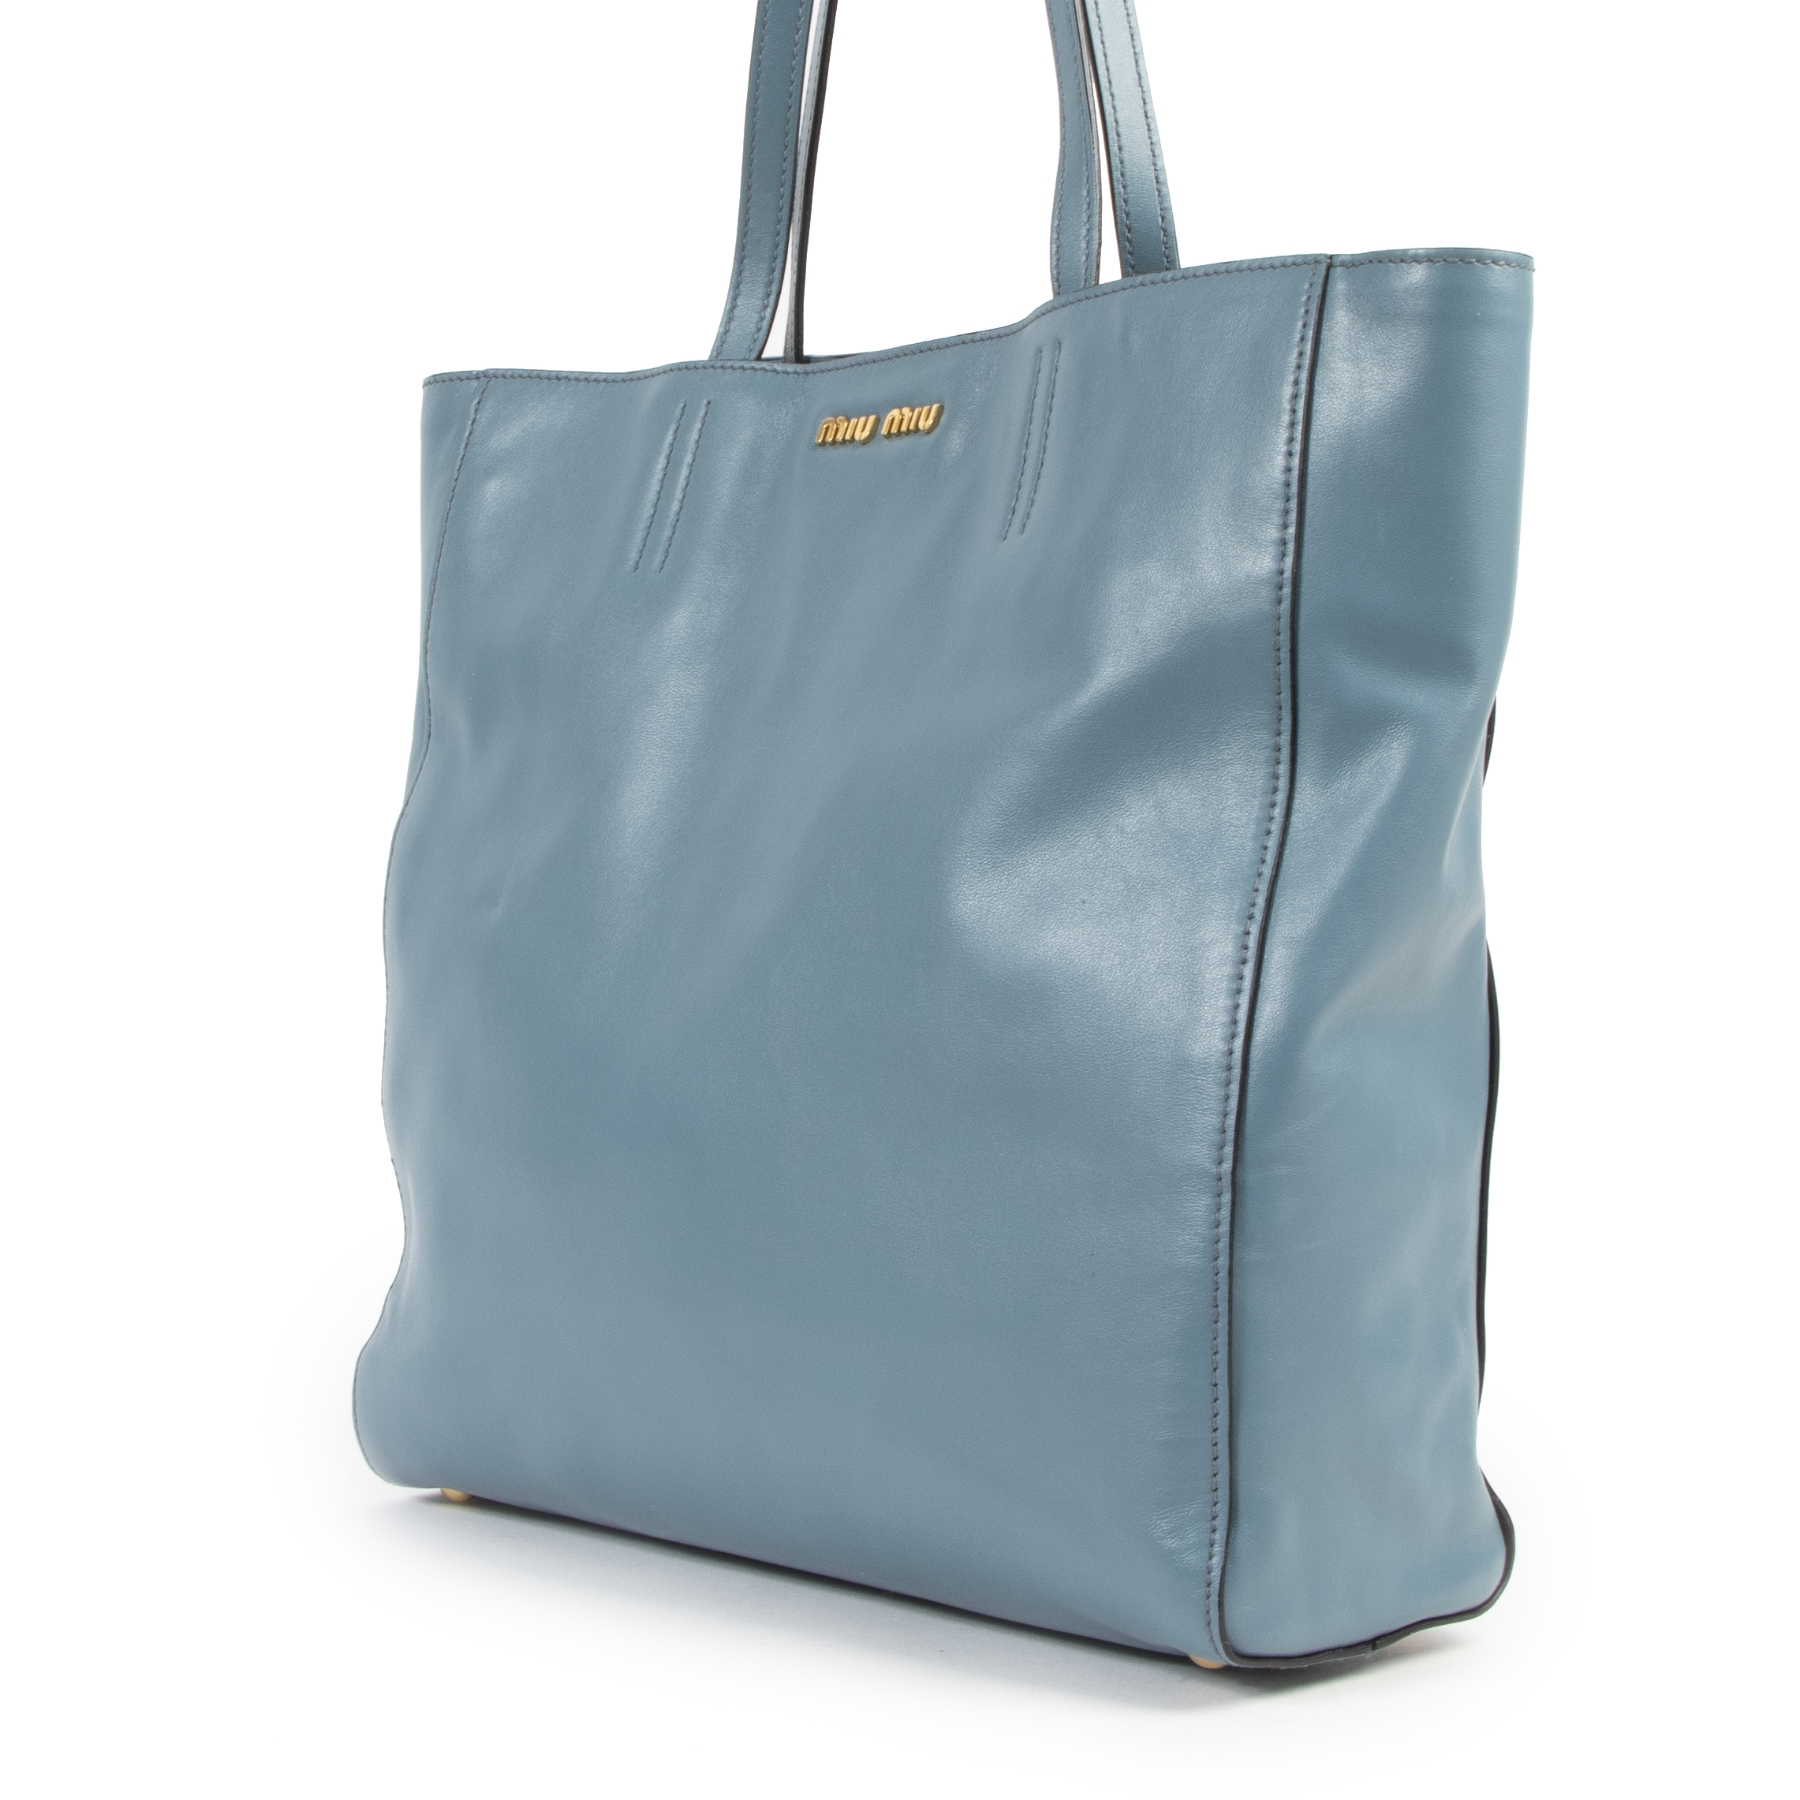 Miu Miu Pigeon Blue Leather Tote Bag